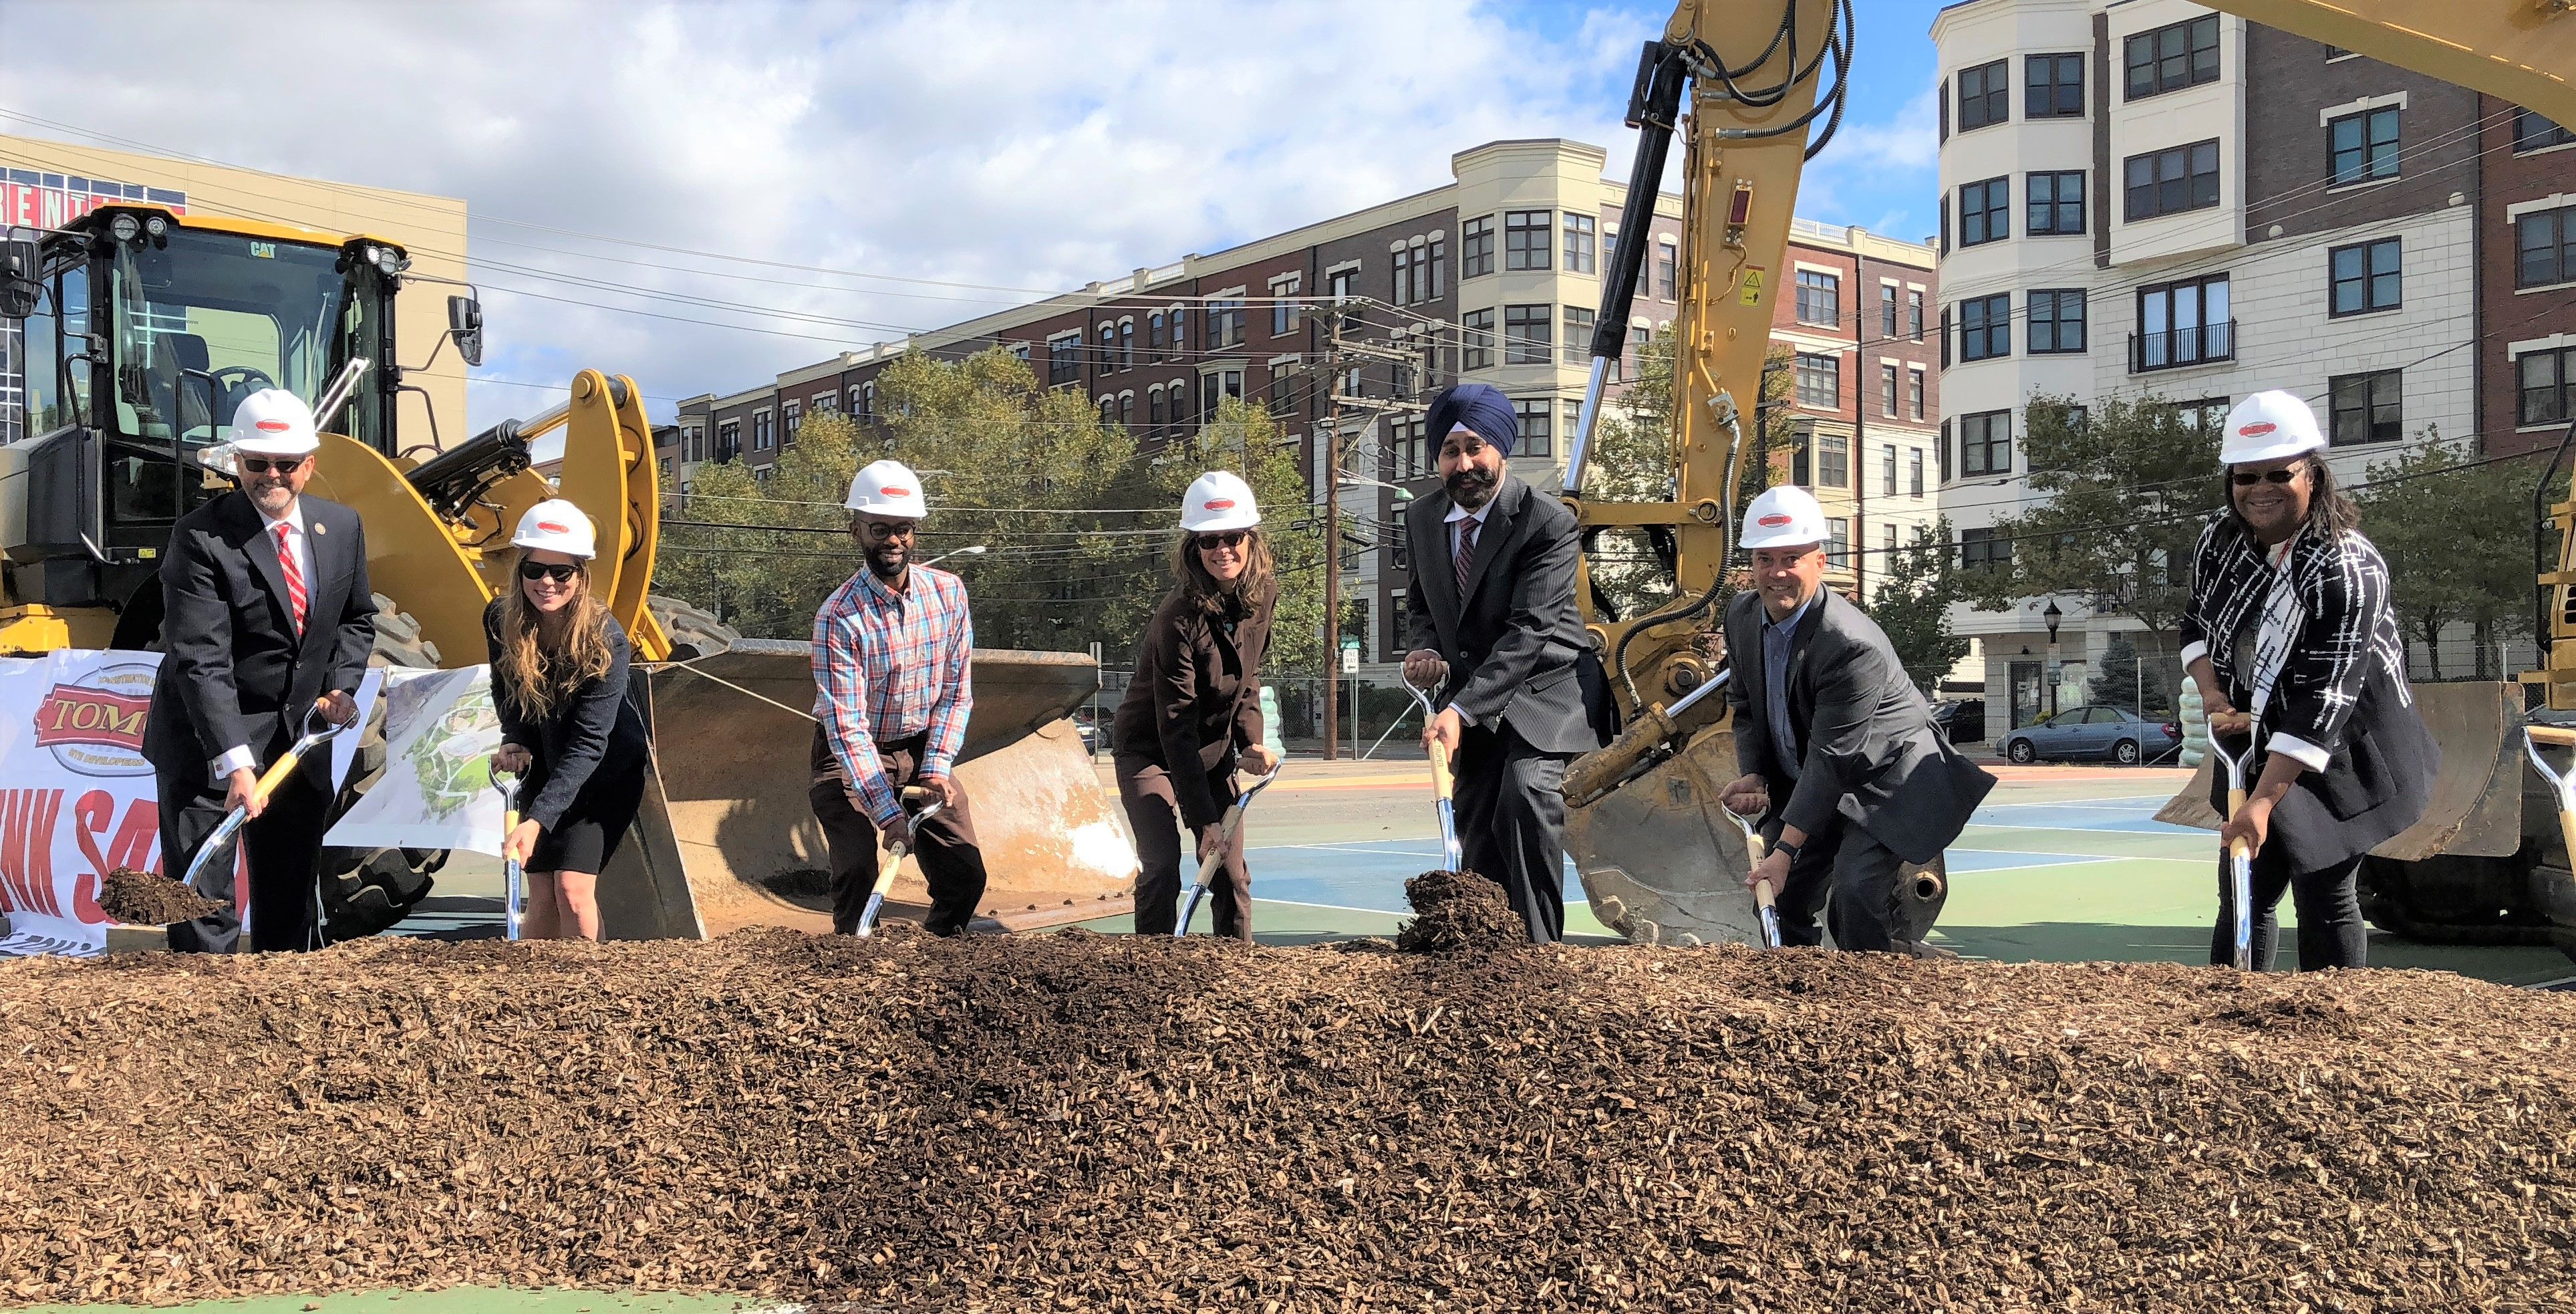 Bhalla celebrating Hoboken's Northwest Resiliency Park, which will become New Jersey's largest resiliency park at 5 acres. (Office of Ravinder Bhalla)